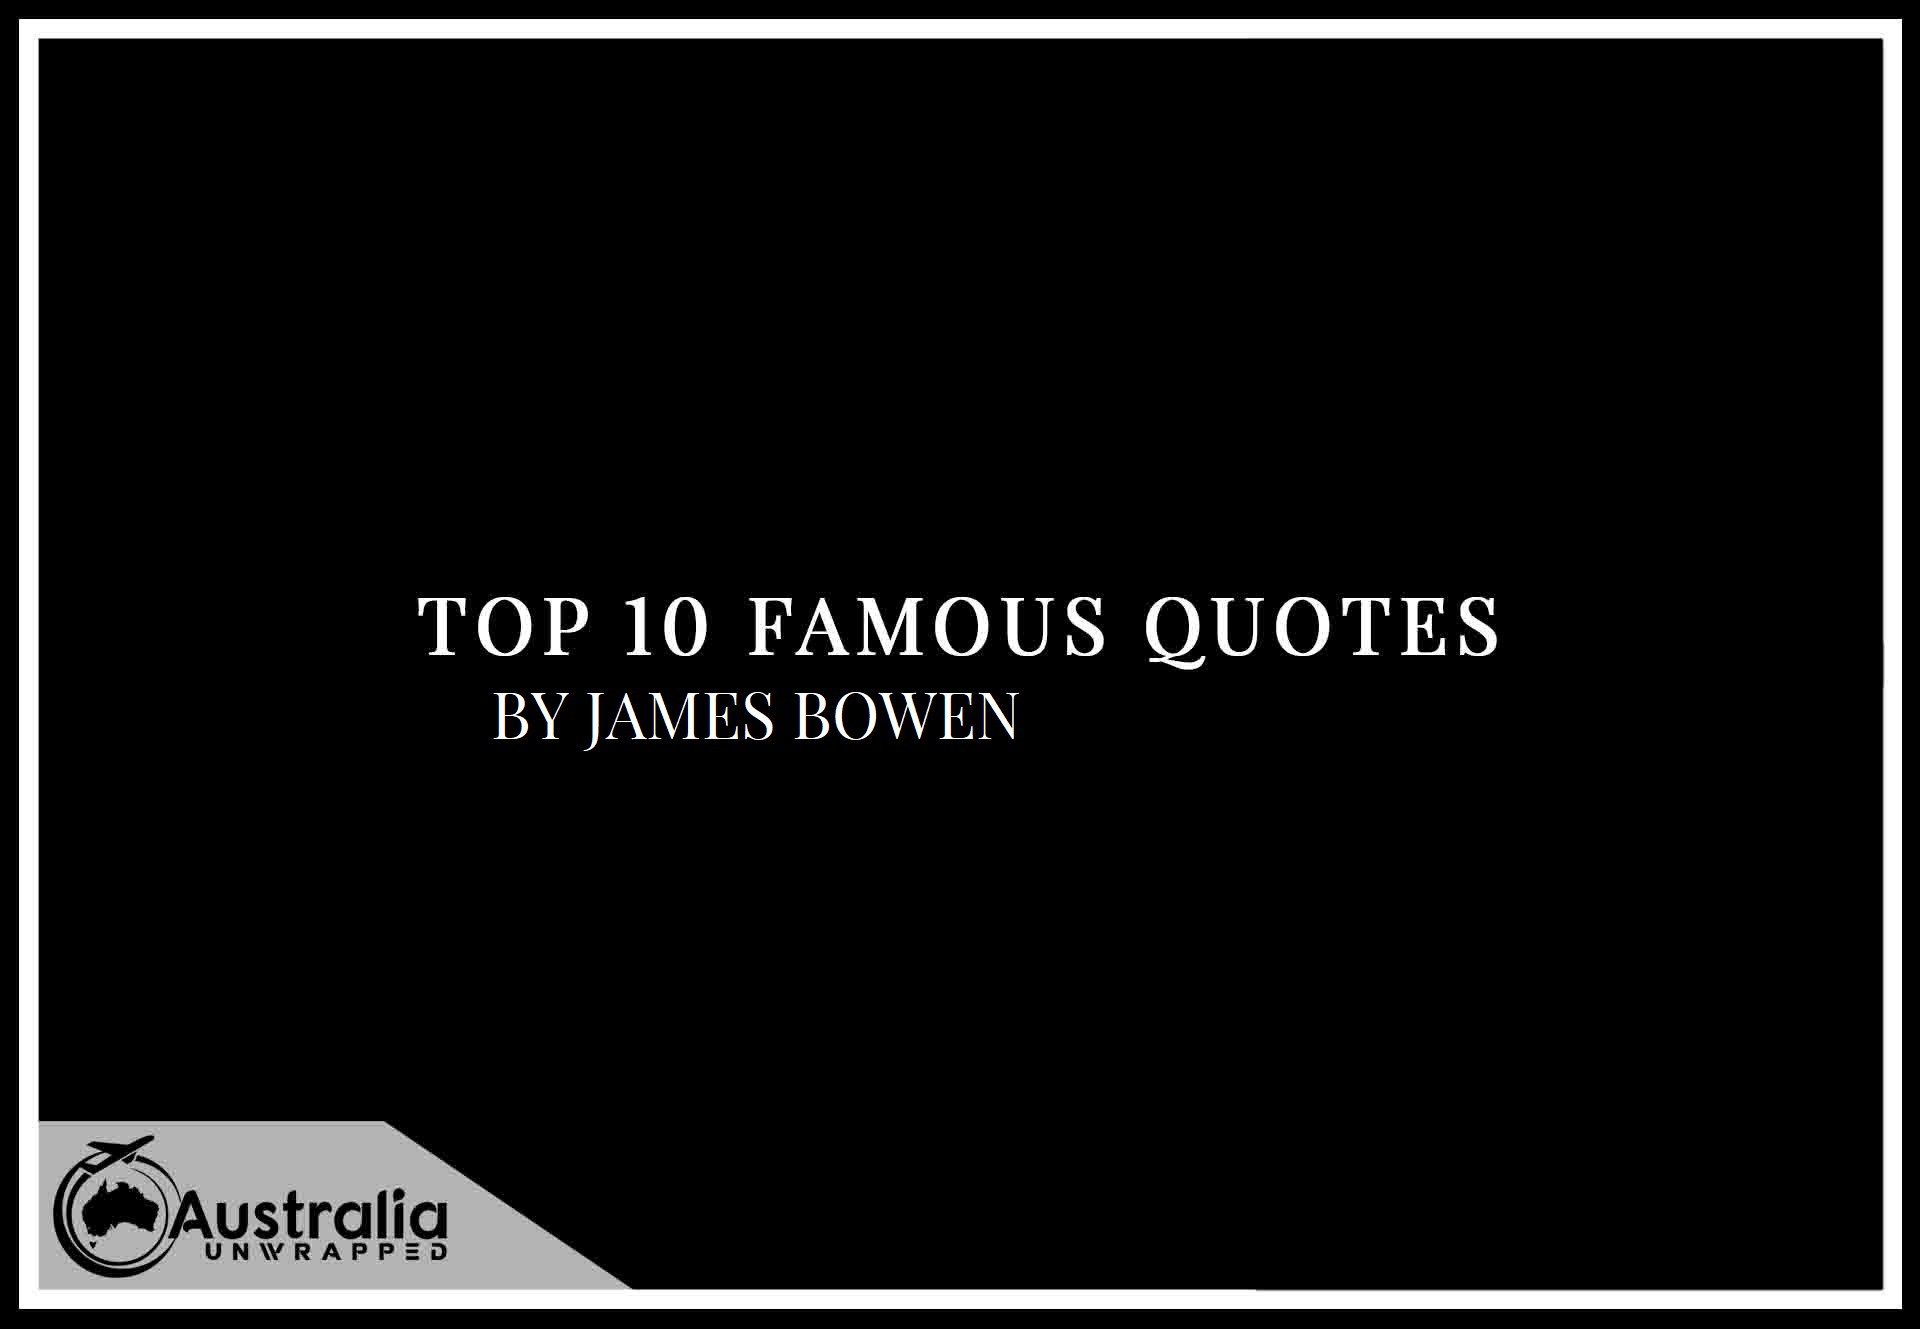 Top 10 Famous Quotes by Author James Bowen